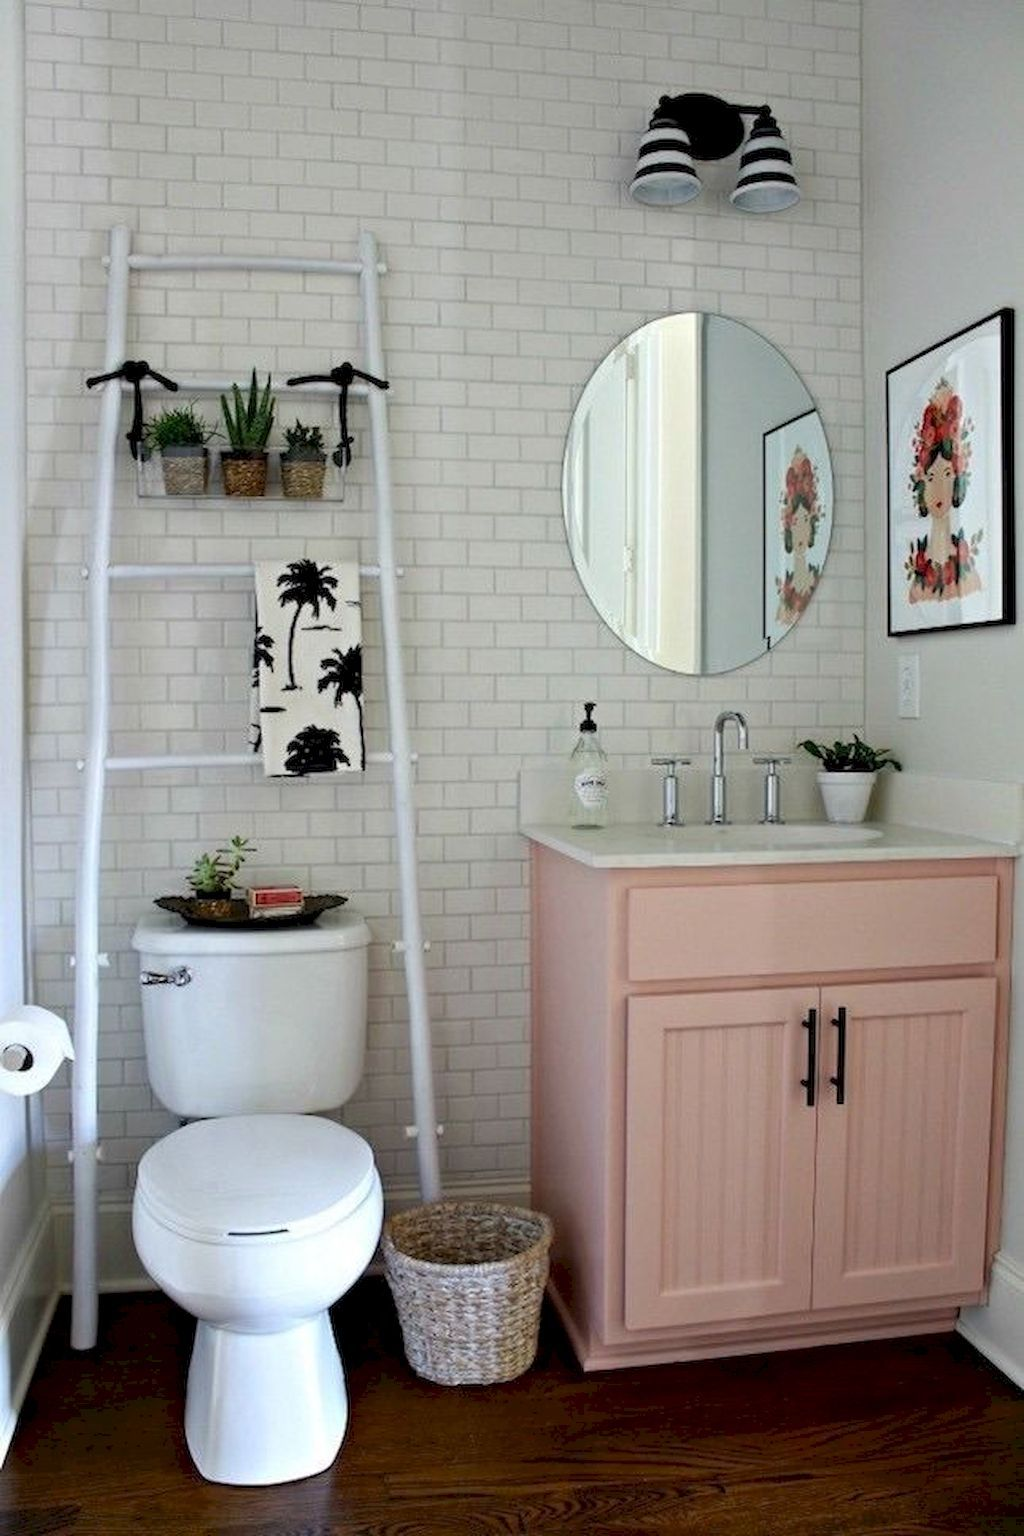 60 Easy And Effective Small Bathroom Organization Ideas First Apartment Decorating Cute